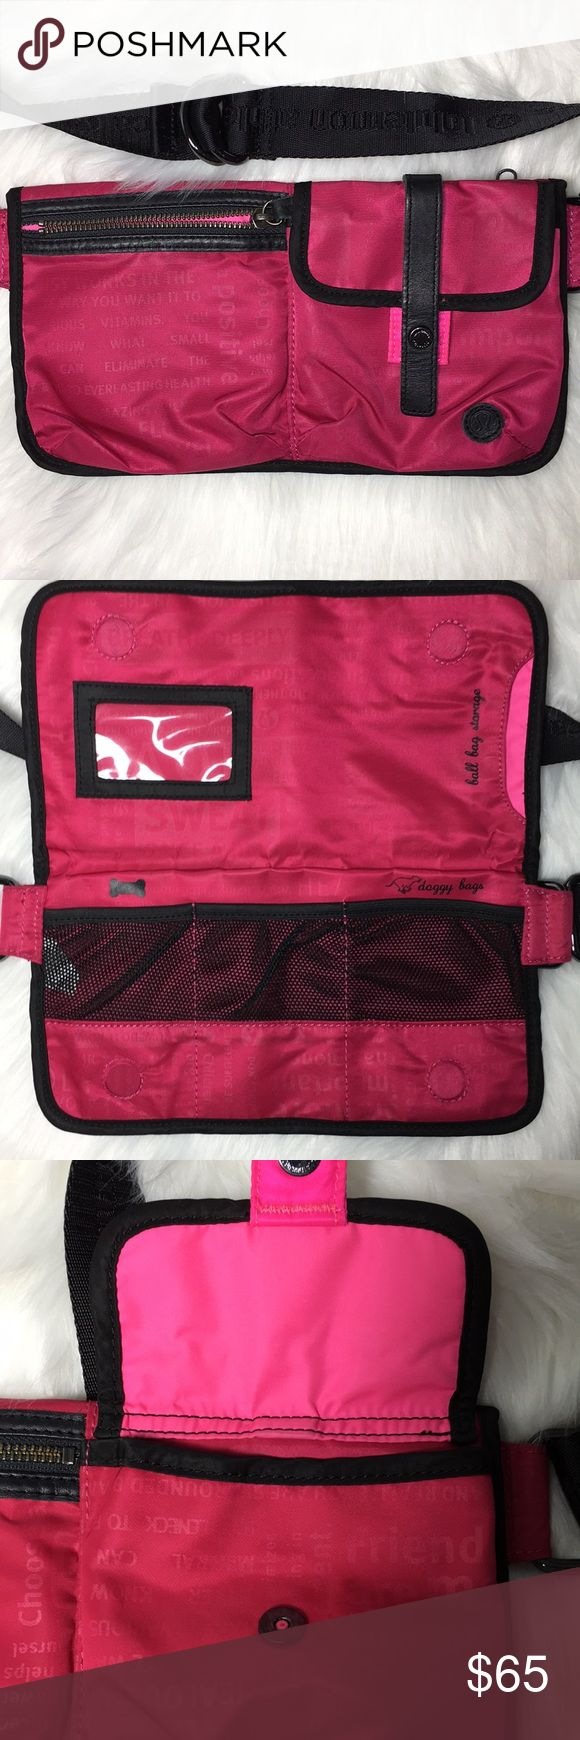 Lululemon Athletica Travel Pooch Bag Hard to find bag for dogwalking or travel. Pockets for bags, treats, and your phone. ID slot. Zip pocket in back for passport and tickets. Removable ball pouch clips to the belt and is machine washable. lululemon athletica Bags Travel Bags